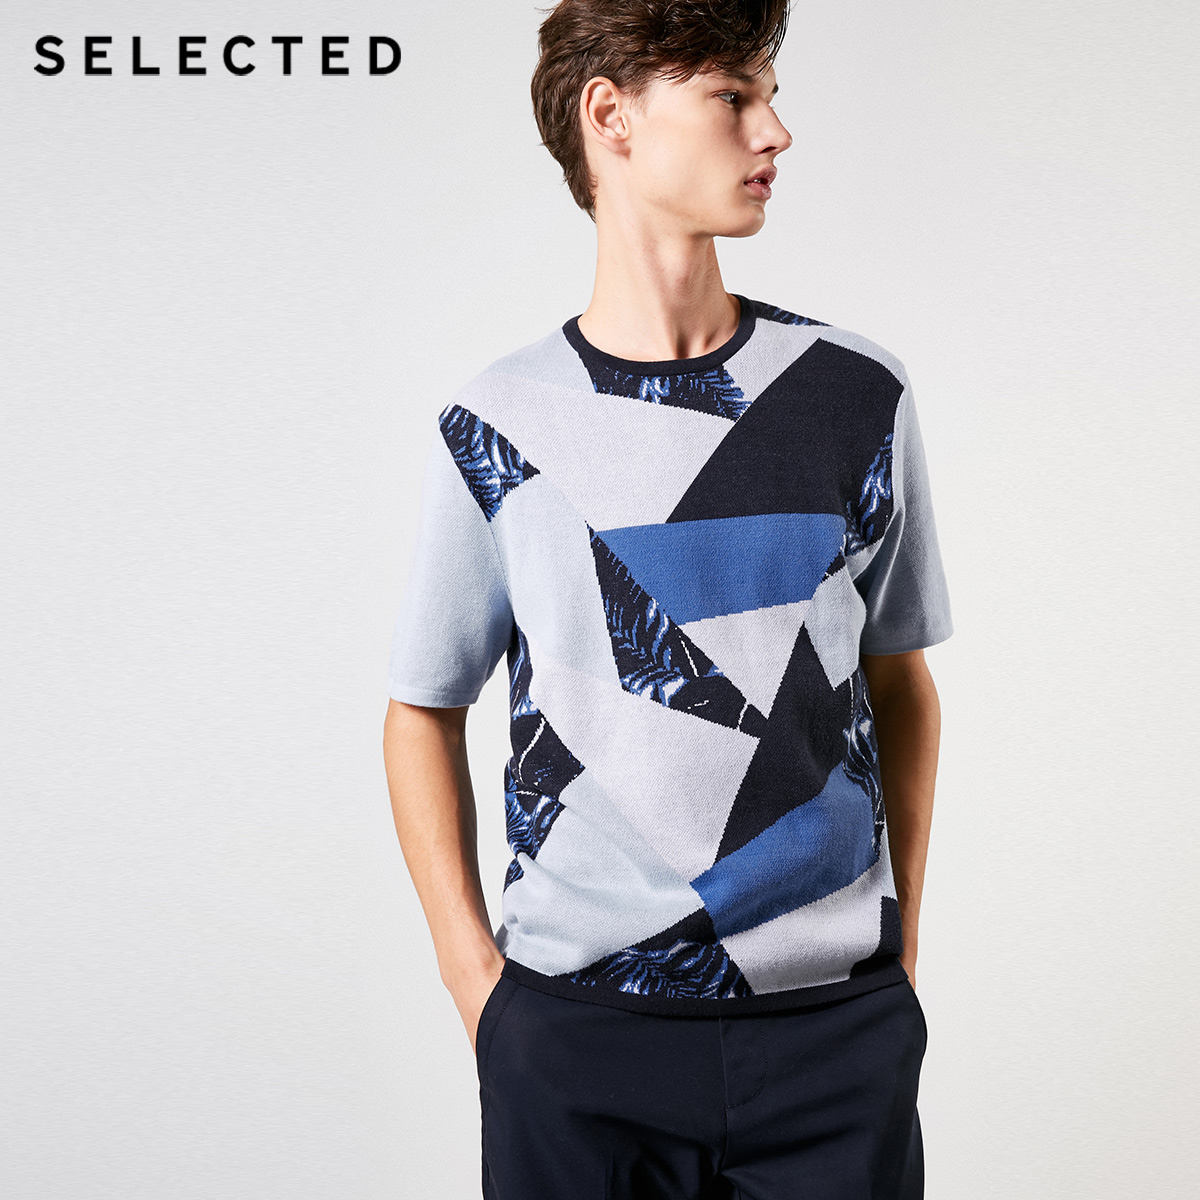 SELECTED Knitted Sweater Short-Sleeved Men's 100%Cotton S-419124501 Geometry Assorted-Colors